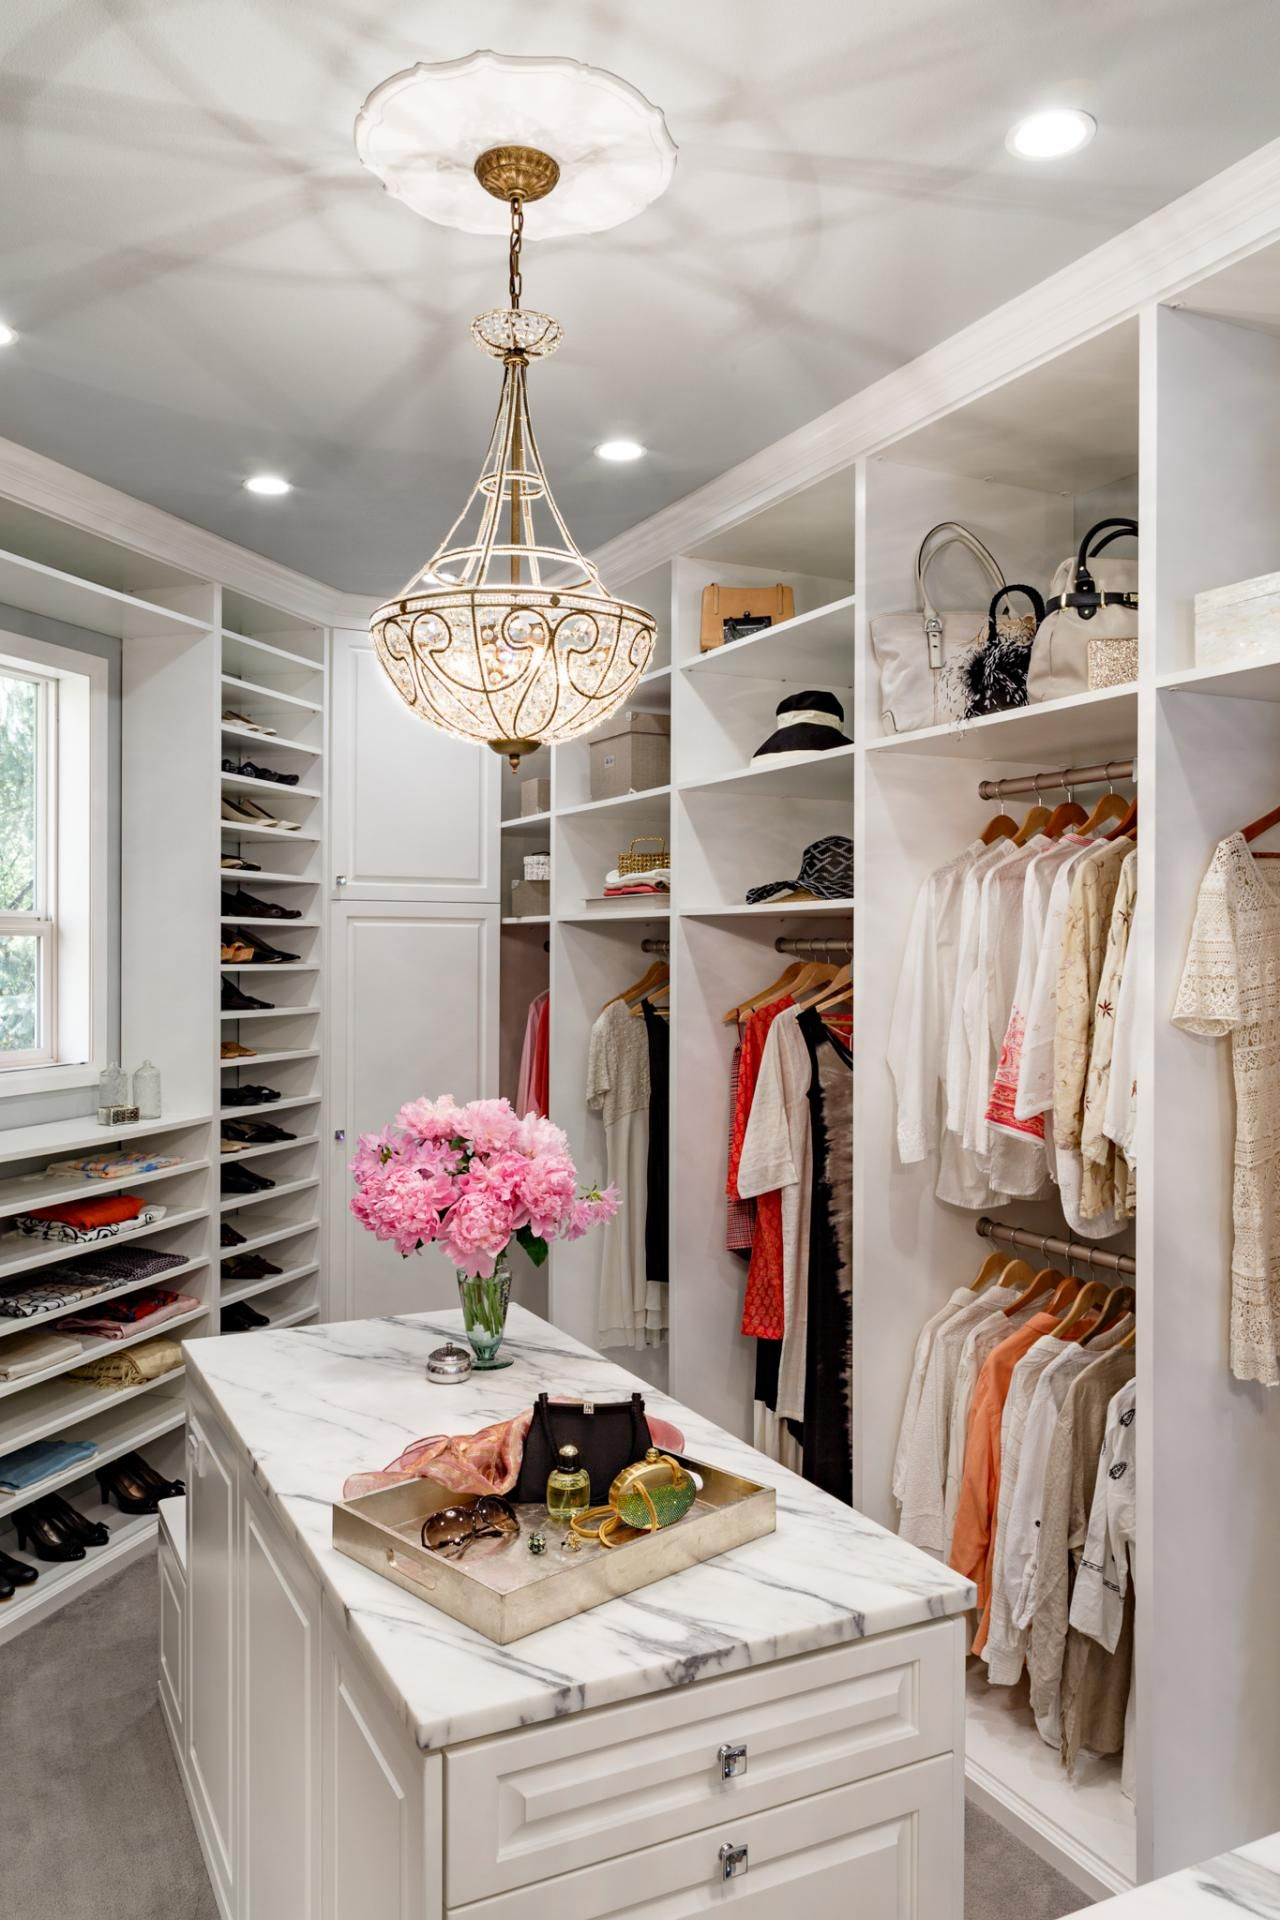 I Seriously Want Fresh Flowers In My Walk In Closet... Wait.. First I Need  A Walk In Closet... 19 Luxury Closet Designs | Decorating And Design Ideas  For ...